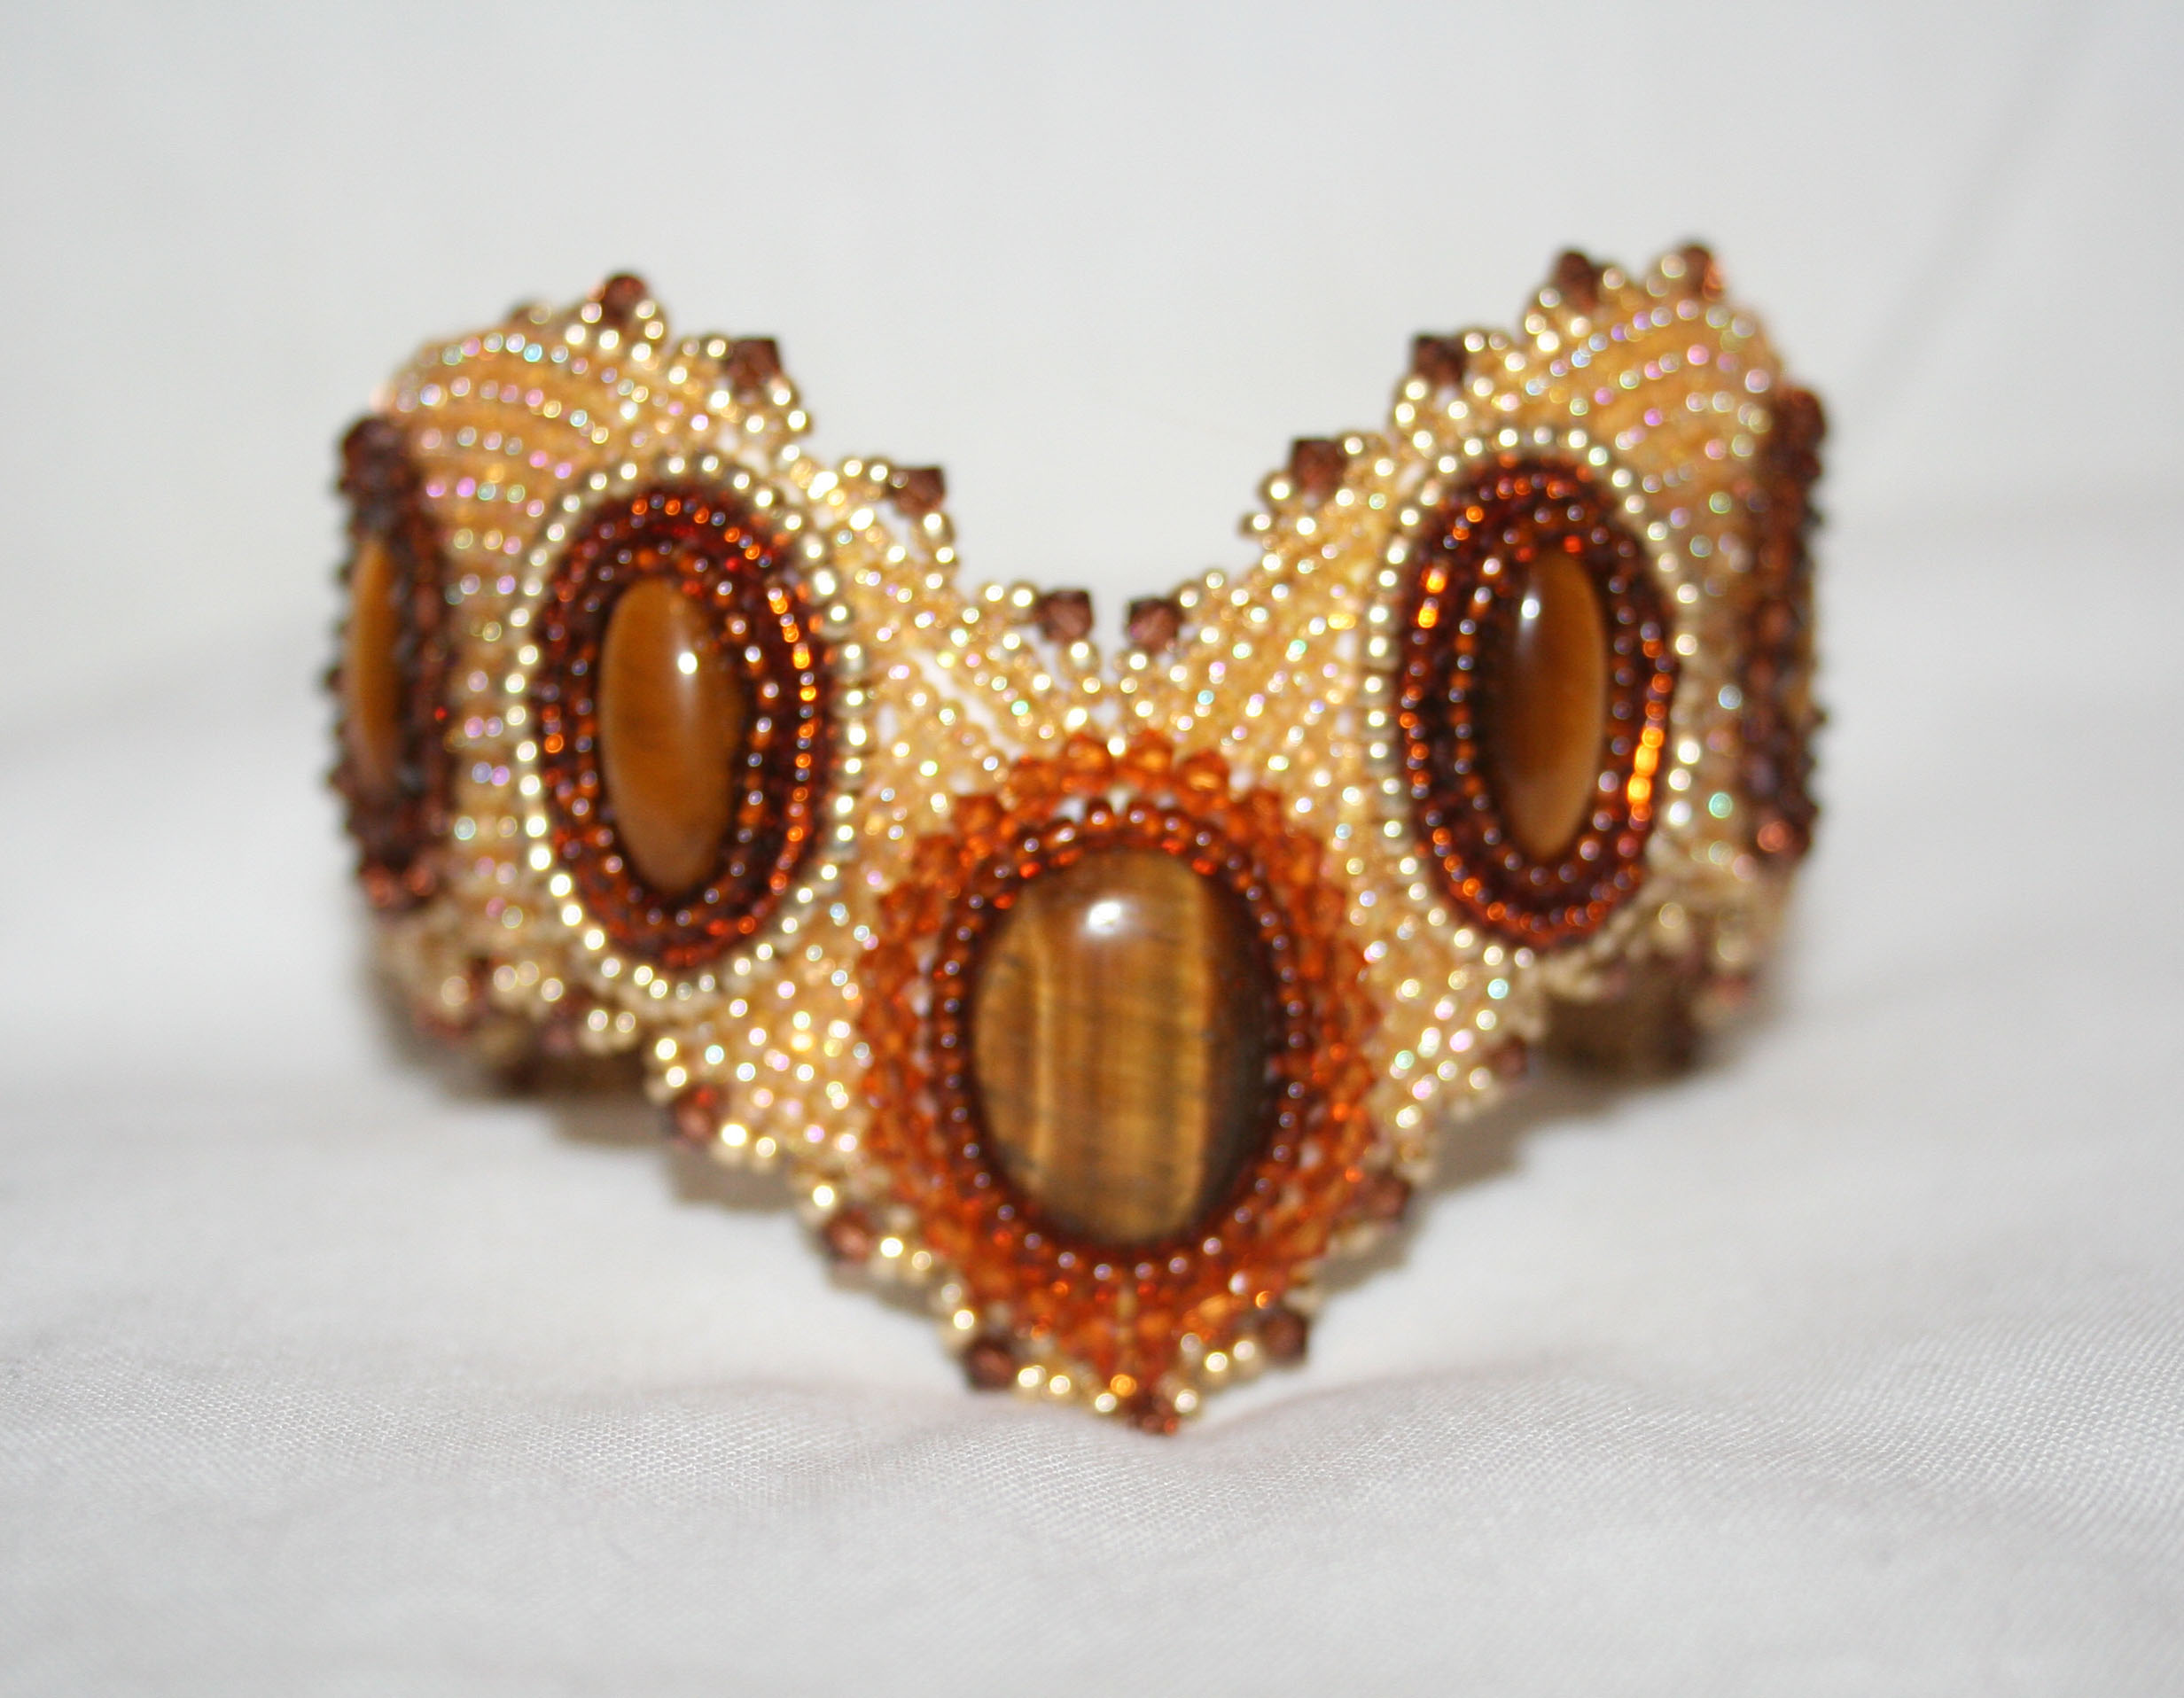 face anson signed cameo eyes links pin gemstone carved tiger brown eye cuff soldier